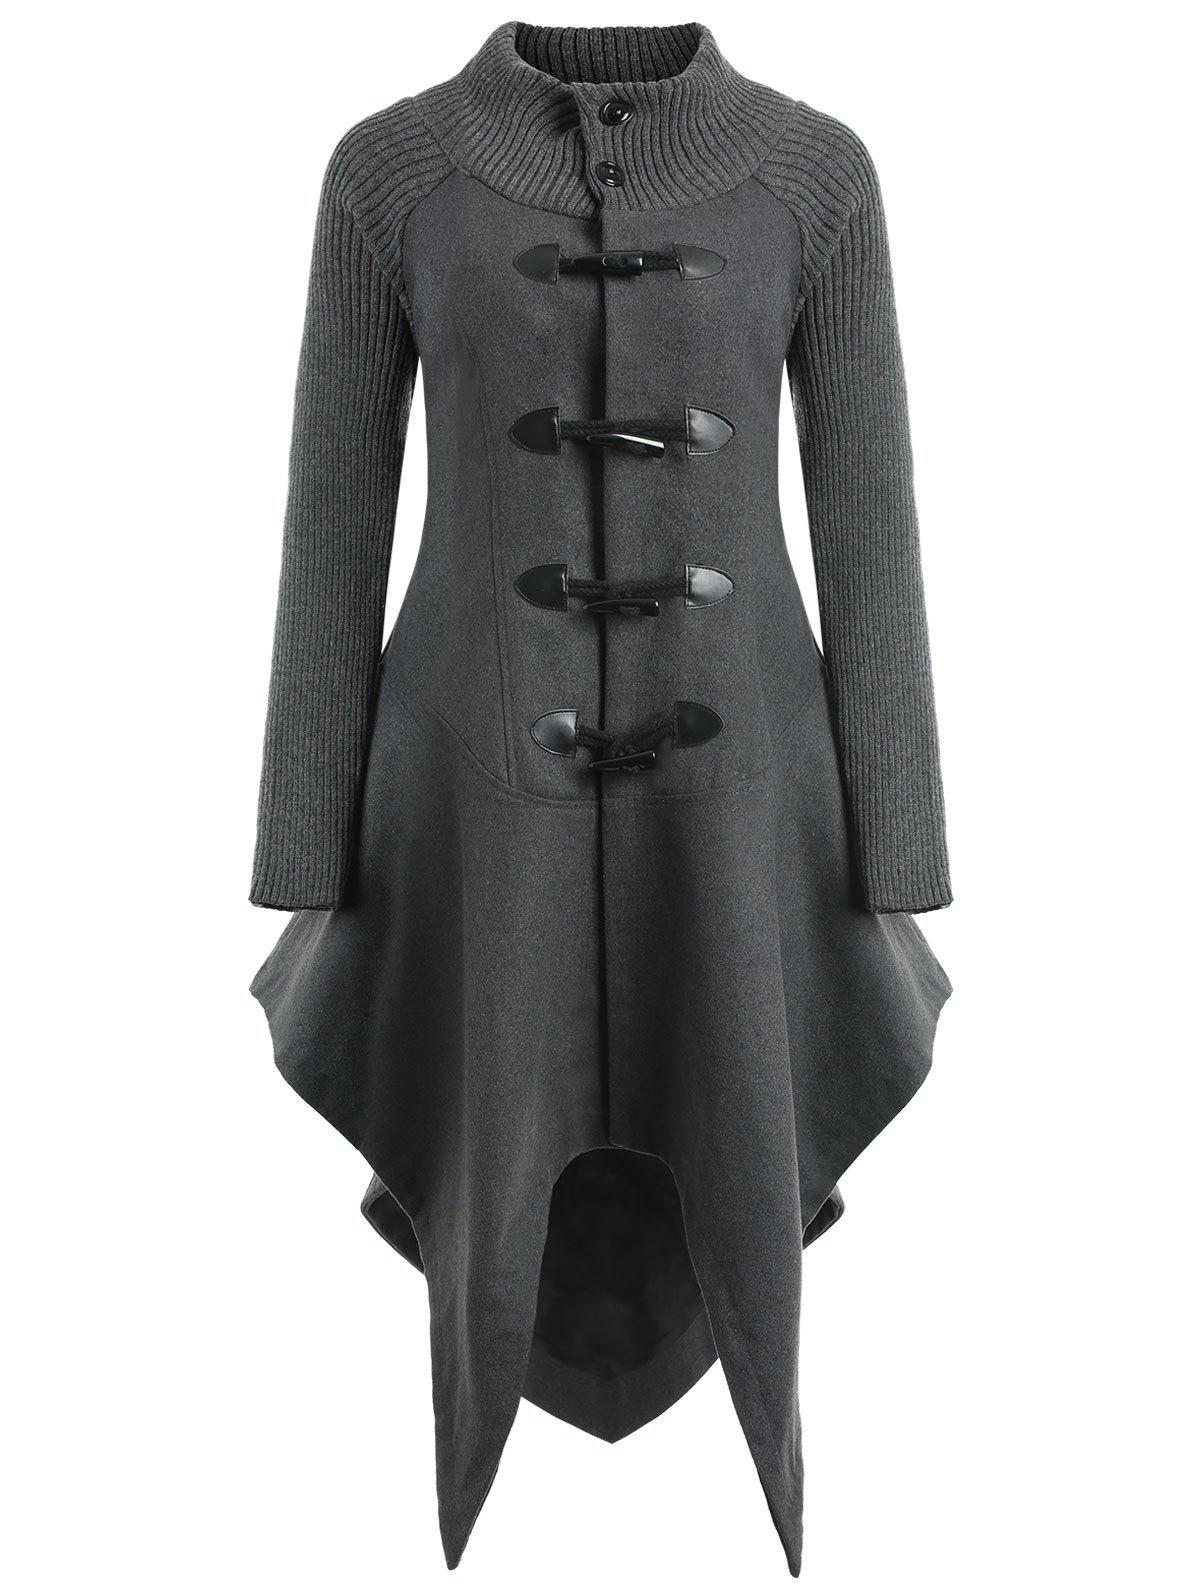 Horn Button Handkerchief Wool Coat - DARK GREY XL